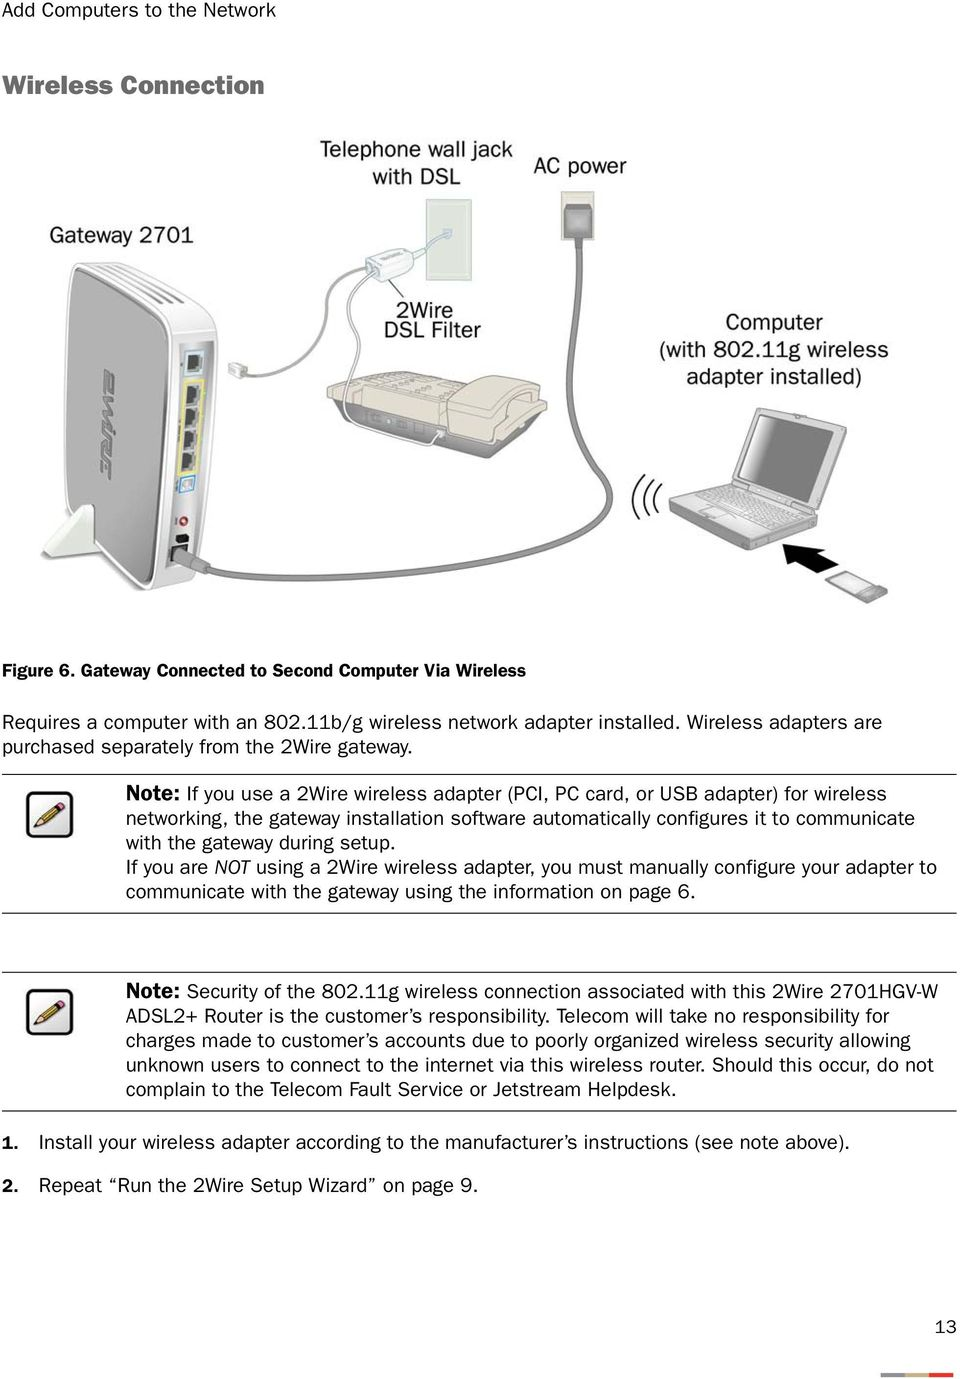 2wire Gateway Installation Guide For 2701hgv W Pdf Dsl Inter Connection Together With Rj45 Connector Wiring Diagram Note If You Use A Wireless Adapter Pci Pc Card Or